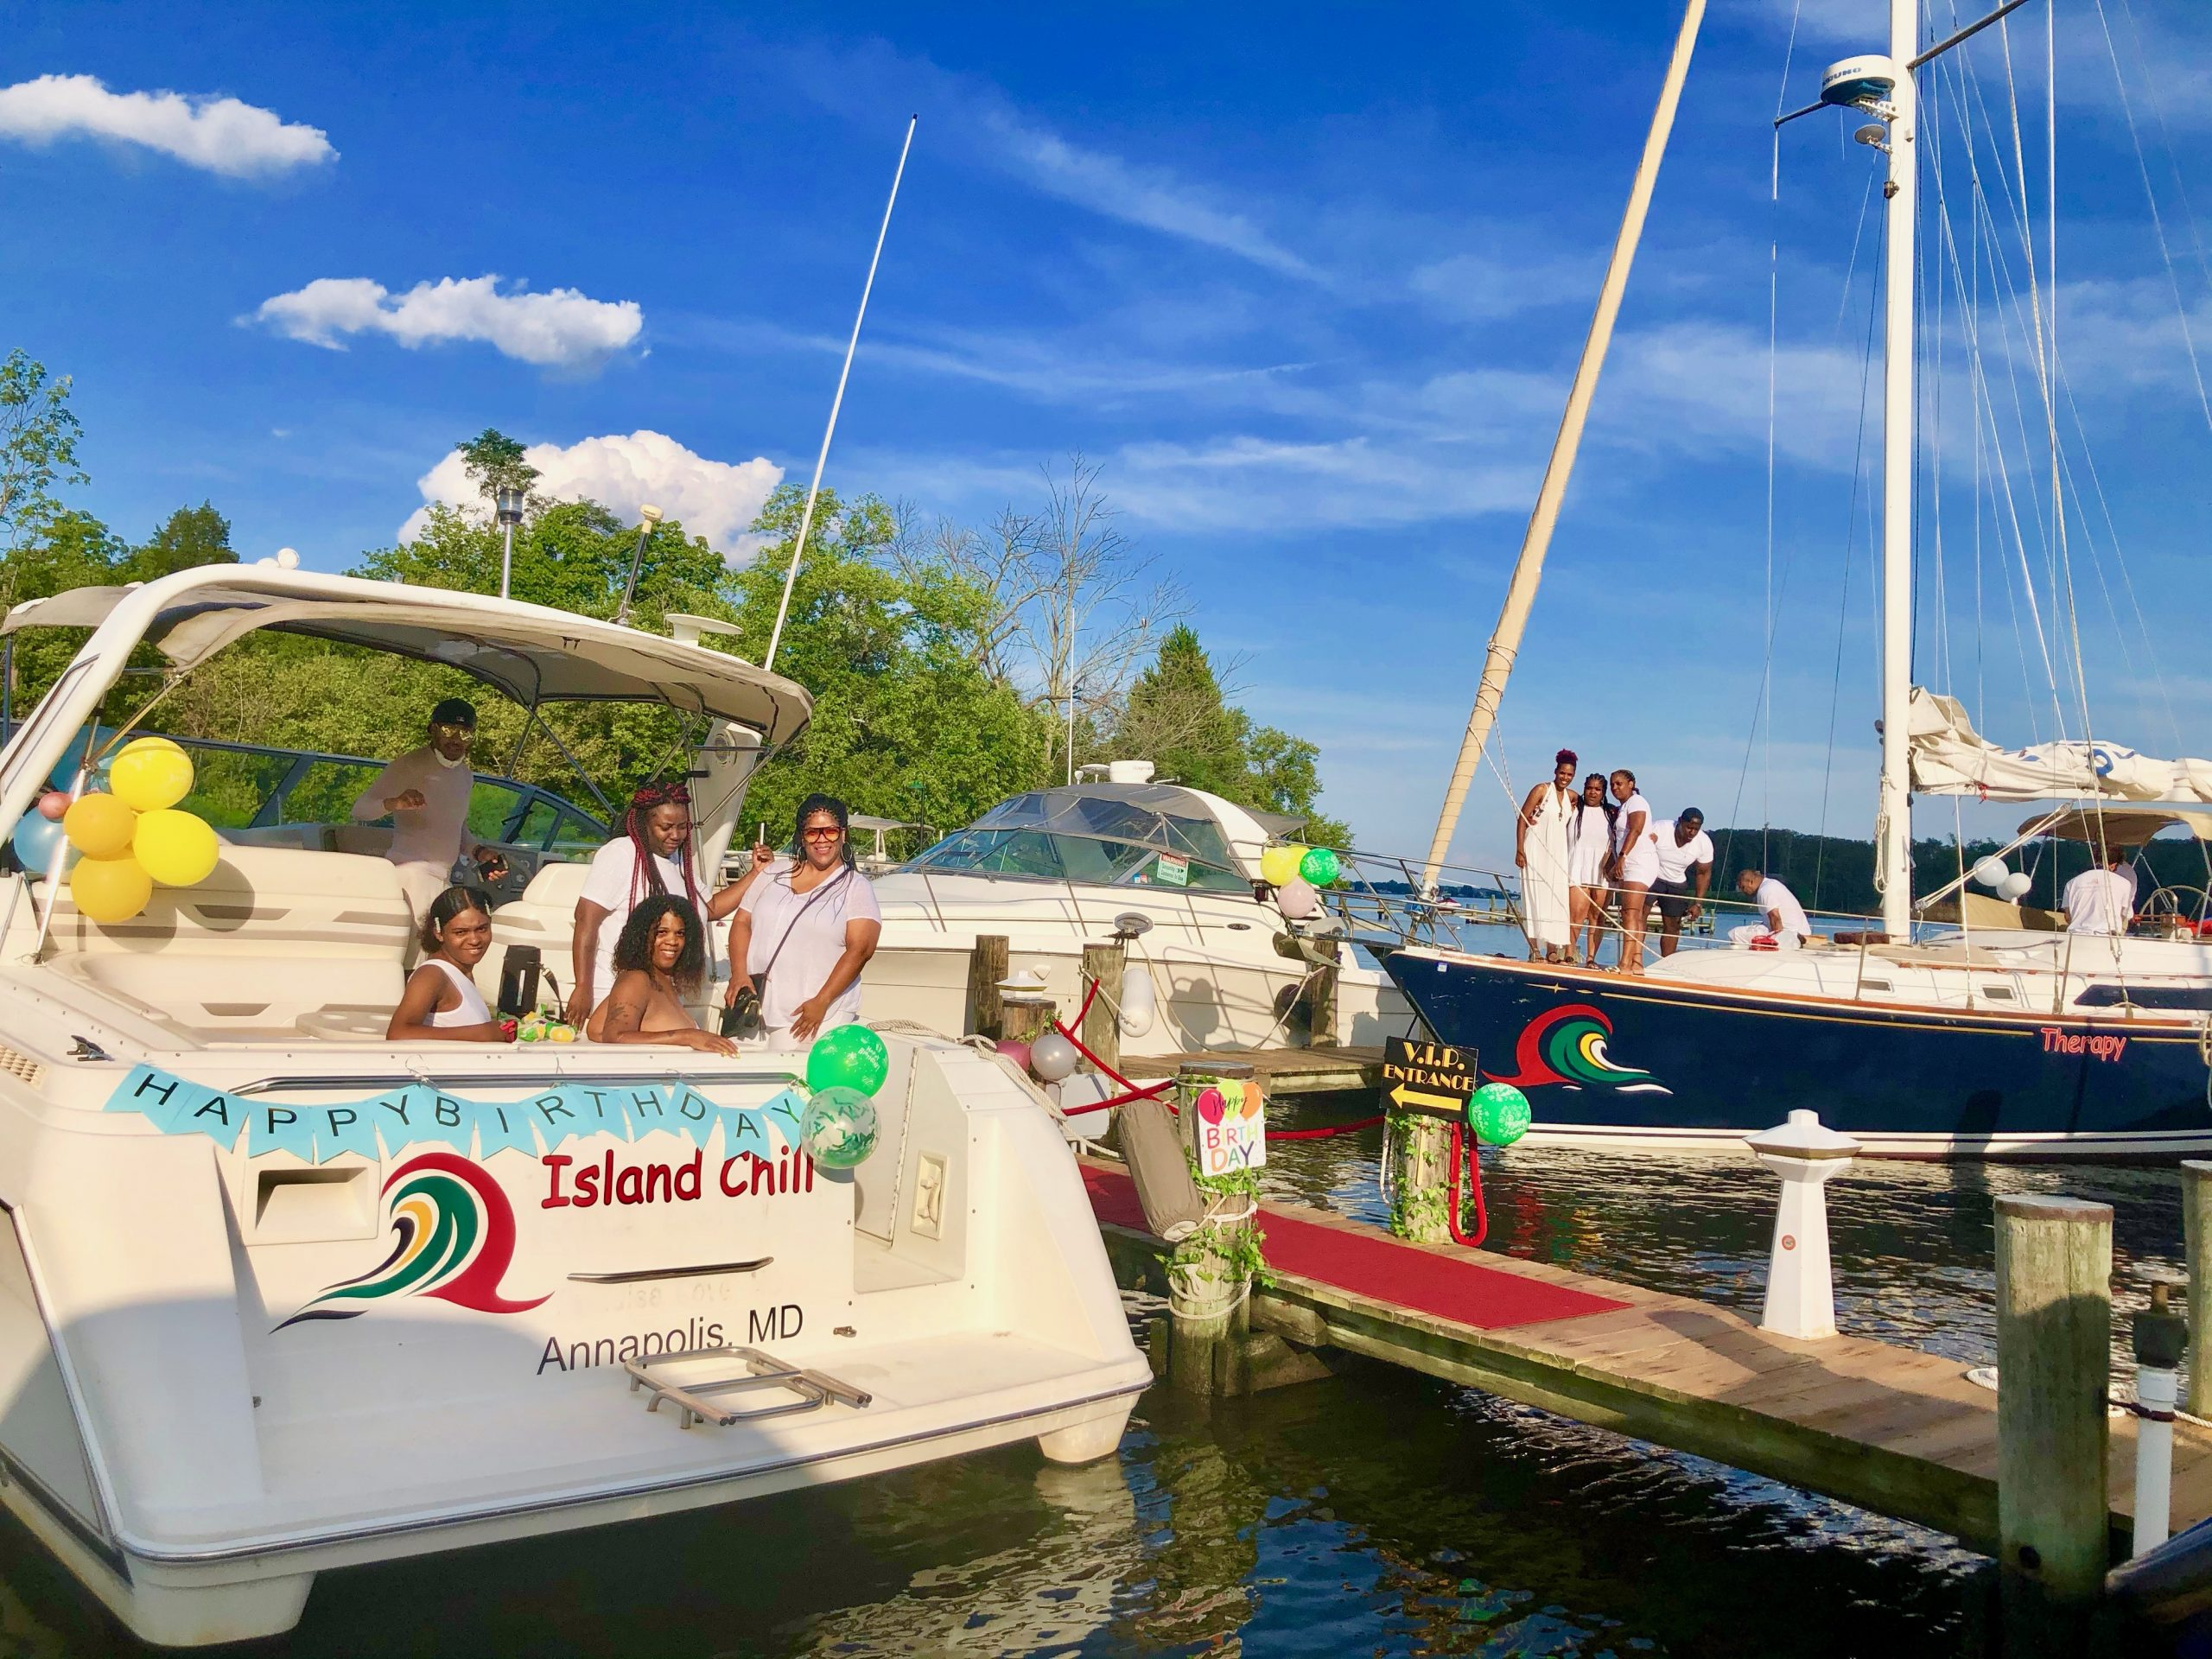 romantic-sunset-cruise-charter-annapolis-chesapeake-bay-maryland-thomas-point-light-house-south-river-maryland-boat-charter-rental-baltimore-yacht-captain-sailboat-powerboat-12-twelve-people